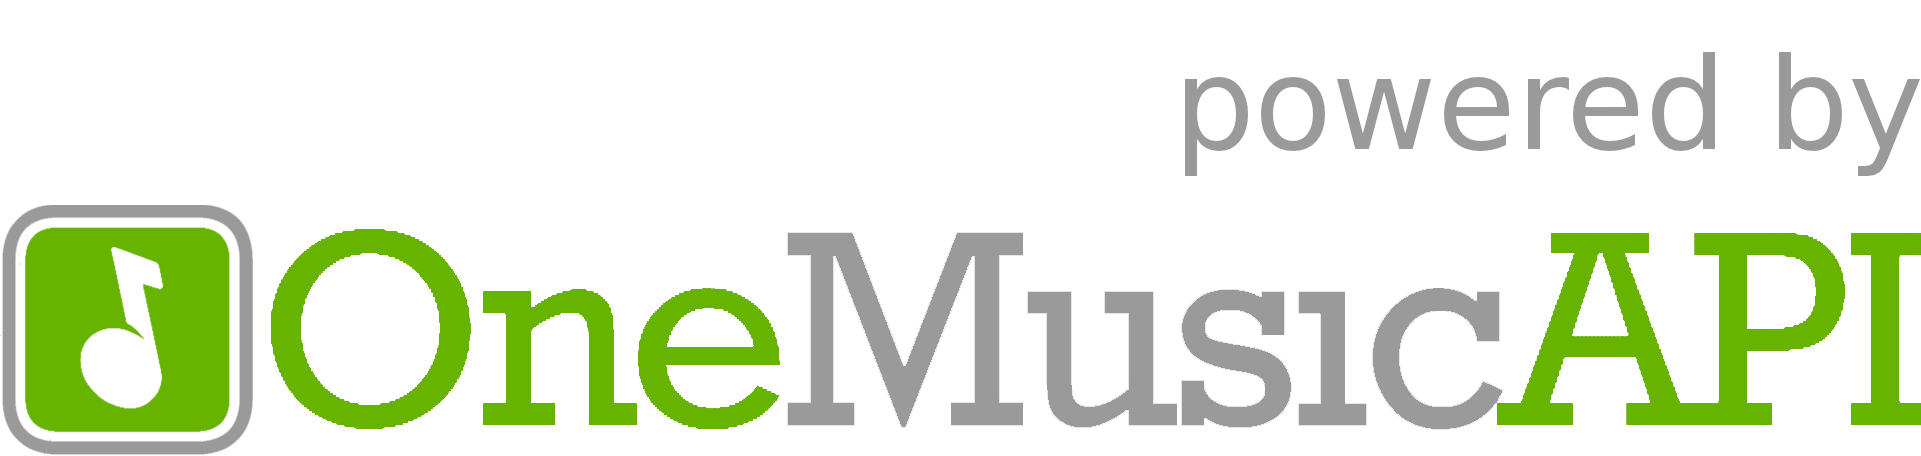 Powered by OneMusicAPI logo